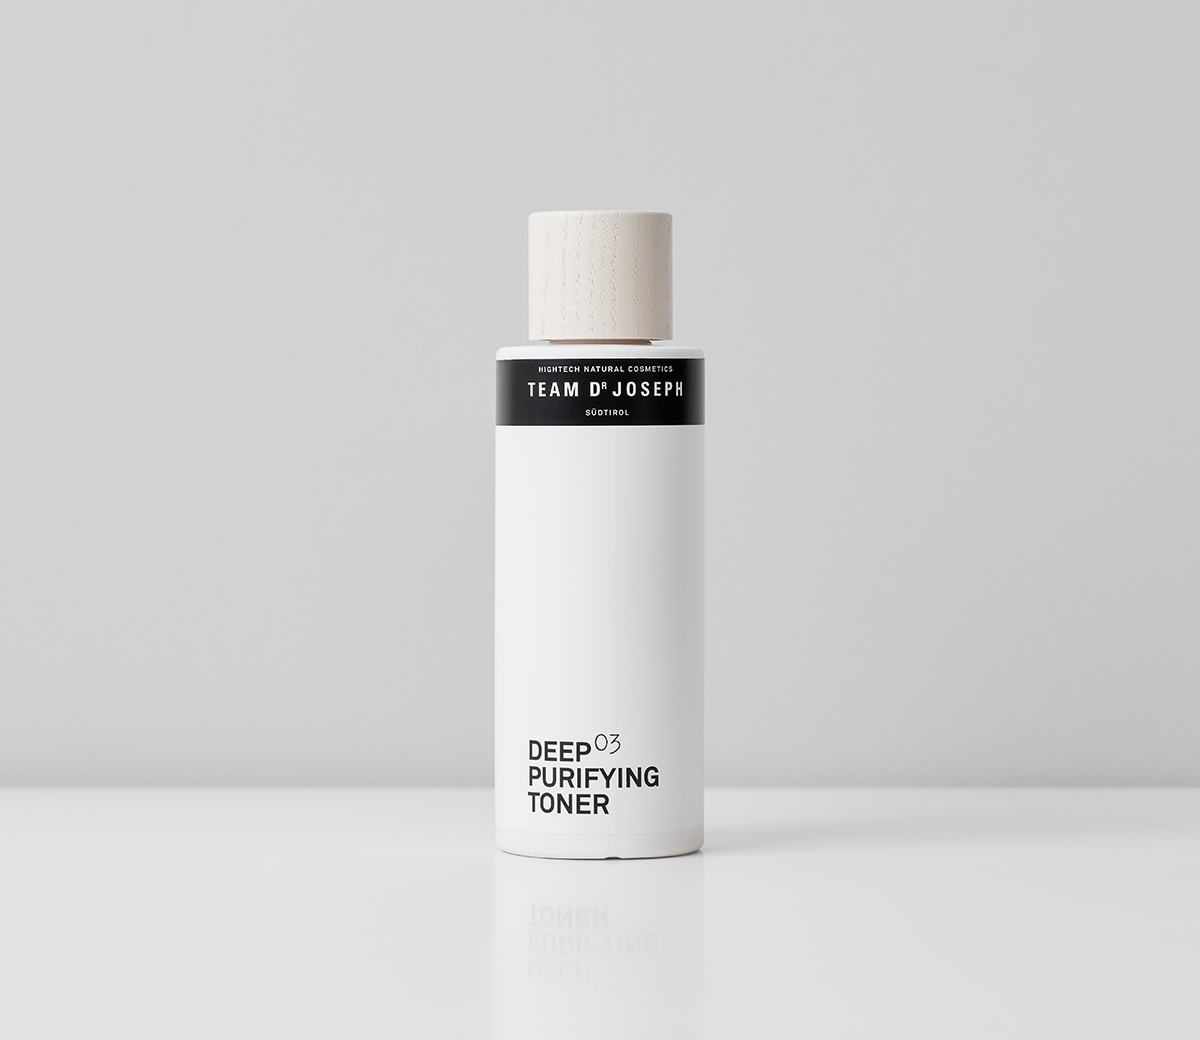 Deep Purifying Toner, 200 ml Clarifying and refreshing